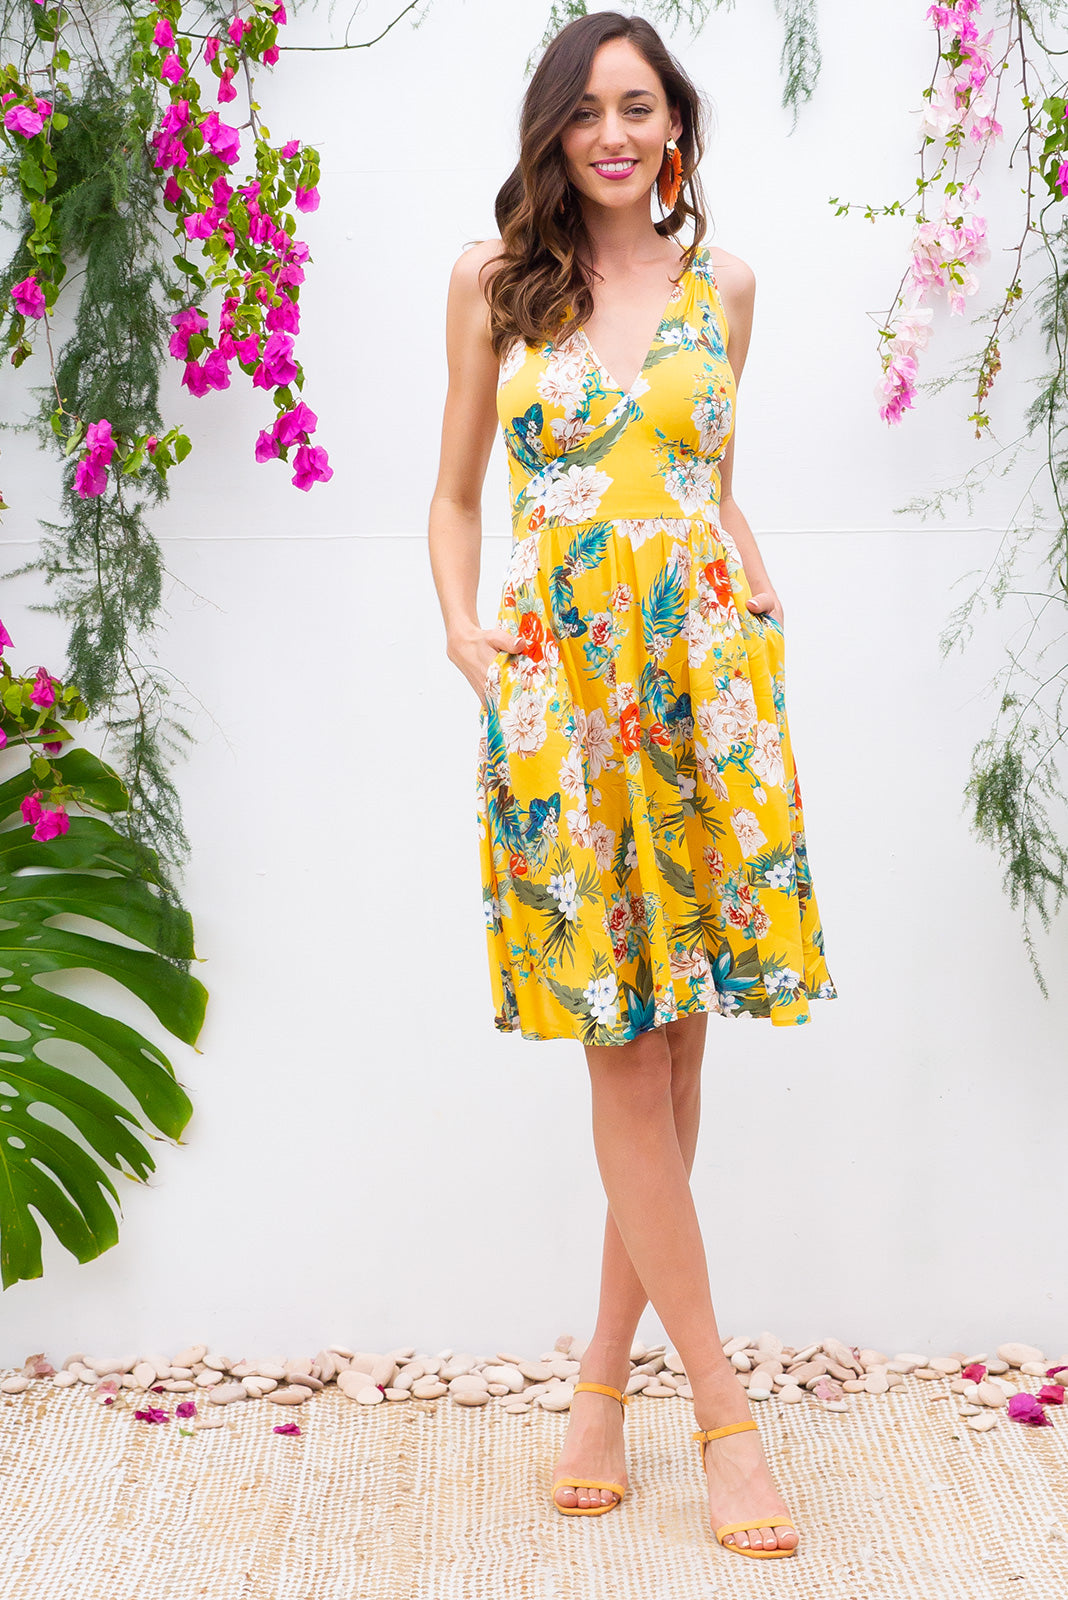 Little Lola Sunshine Yellow dress features a vintage inspired fitted basque waist and elasticated waist with a sleeveless design and deep v neck the fabric is a soft woven rayon in a yellow based tropical floral print